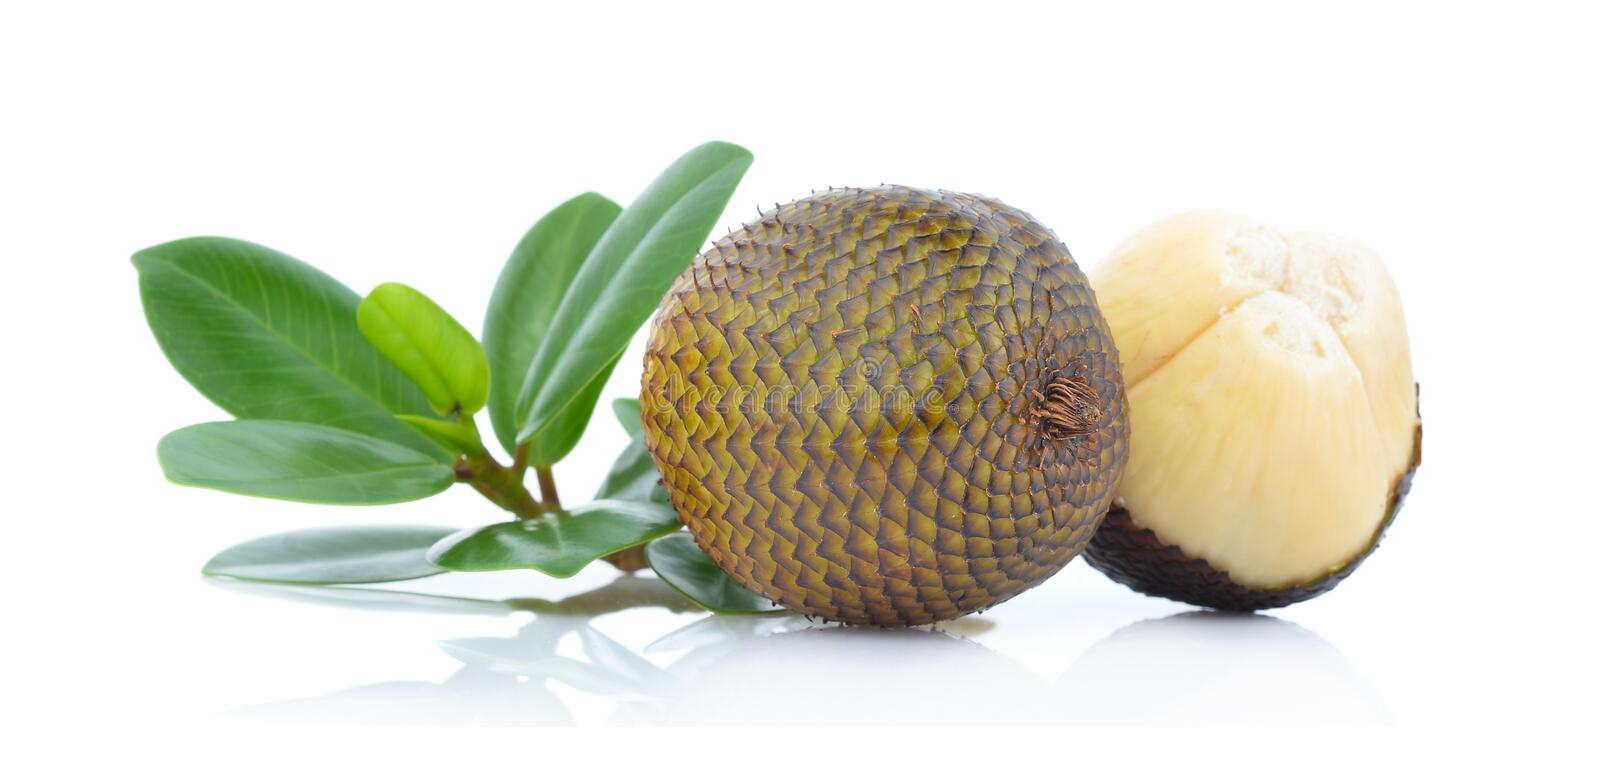 Snake fruit,Salacca,zakacca Salak Indo with green leaves isolated on white background.  stock photo